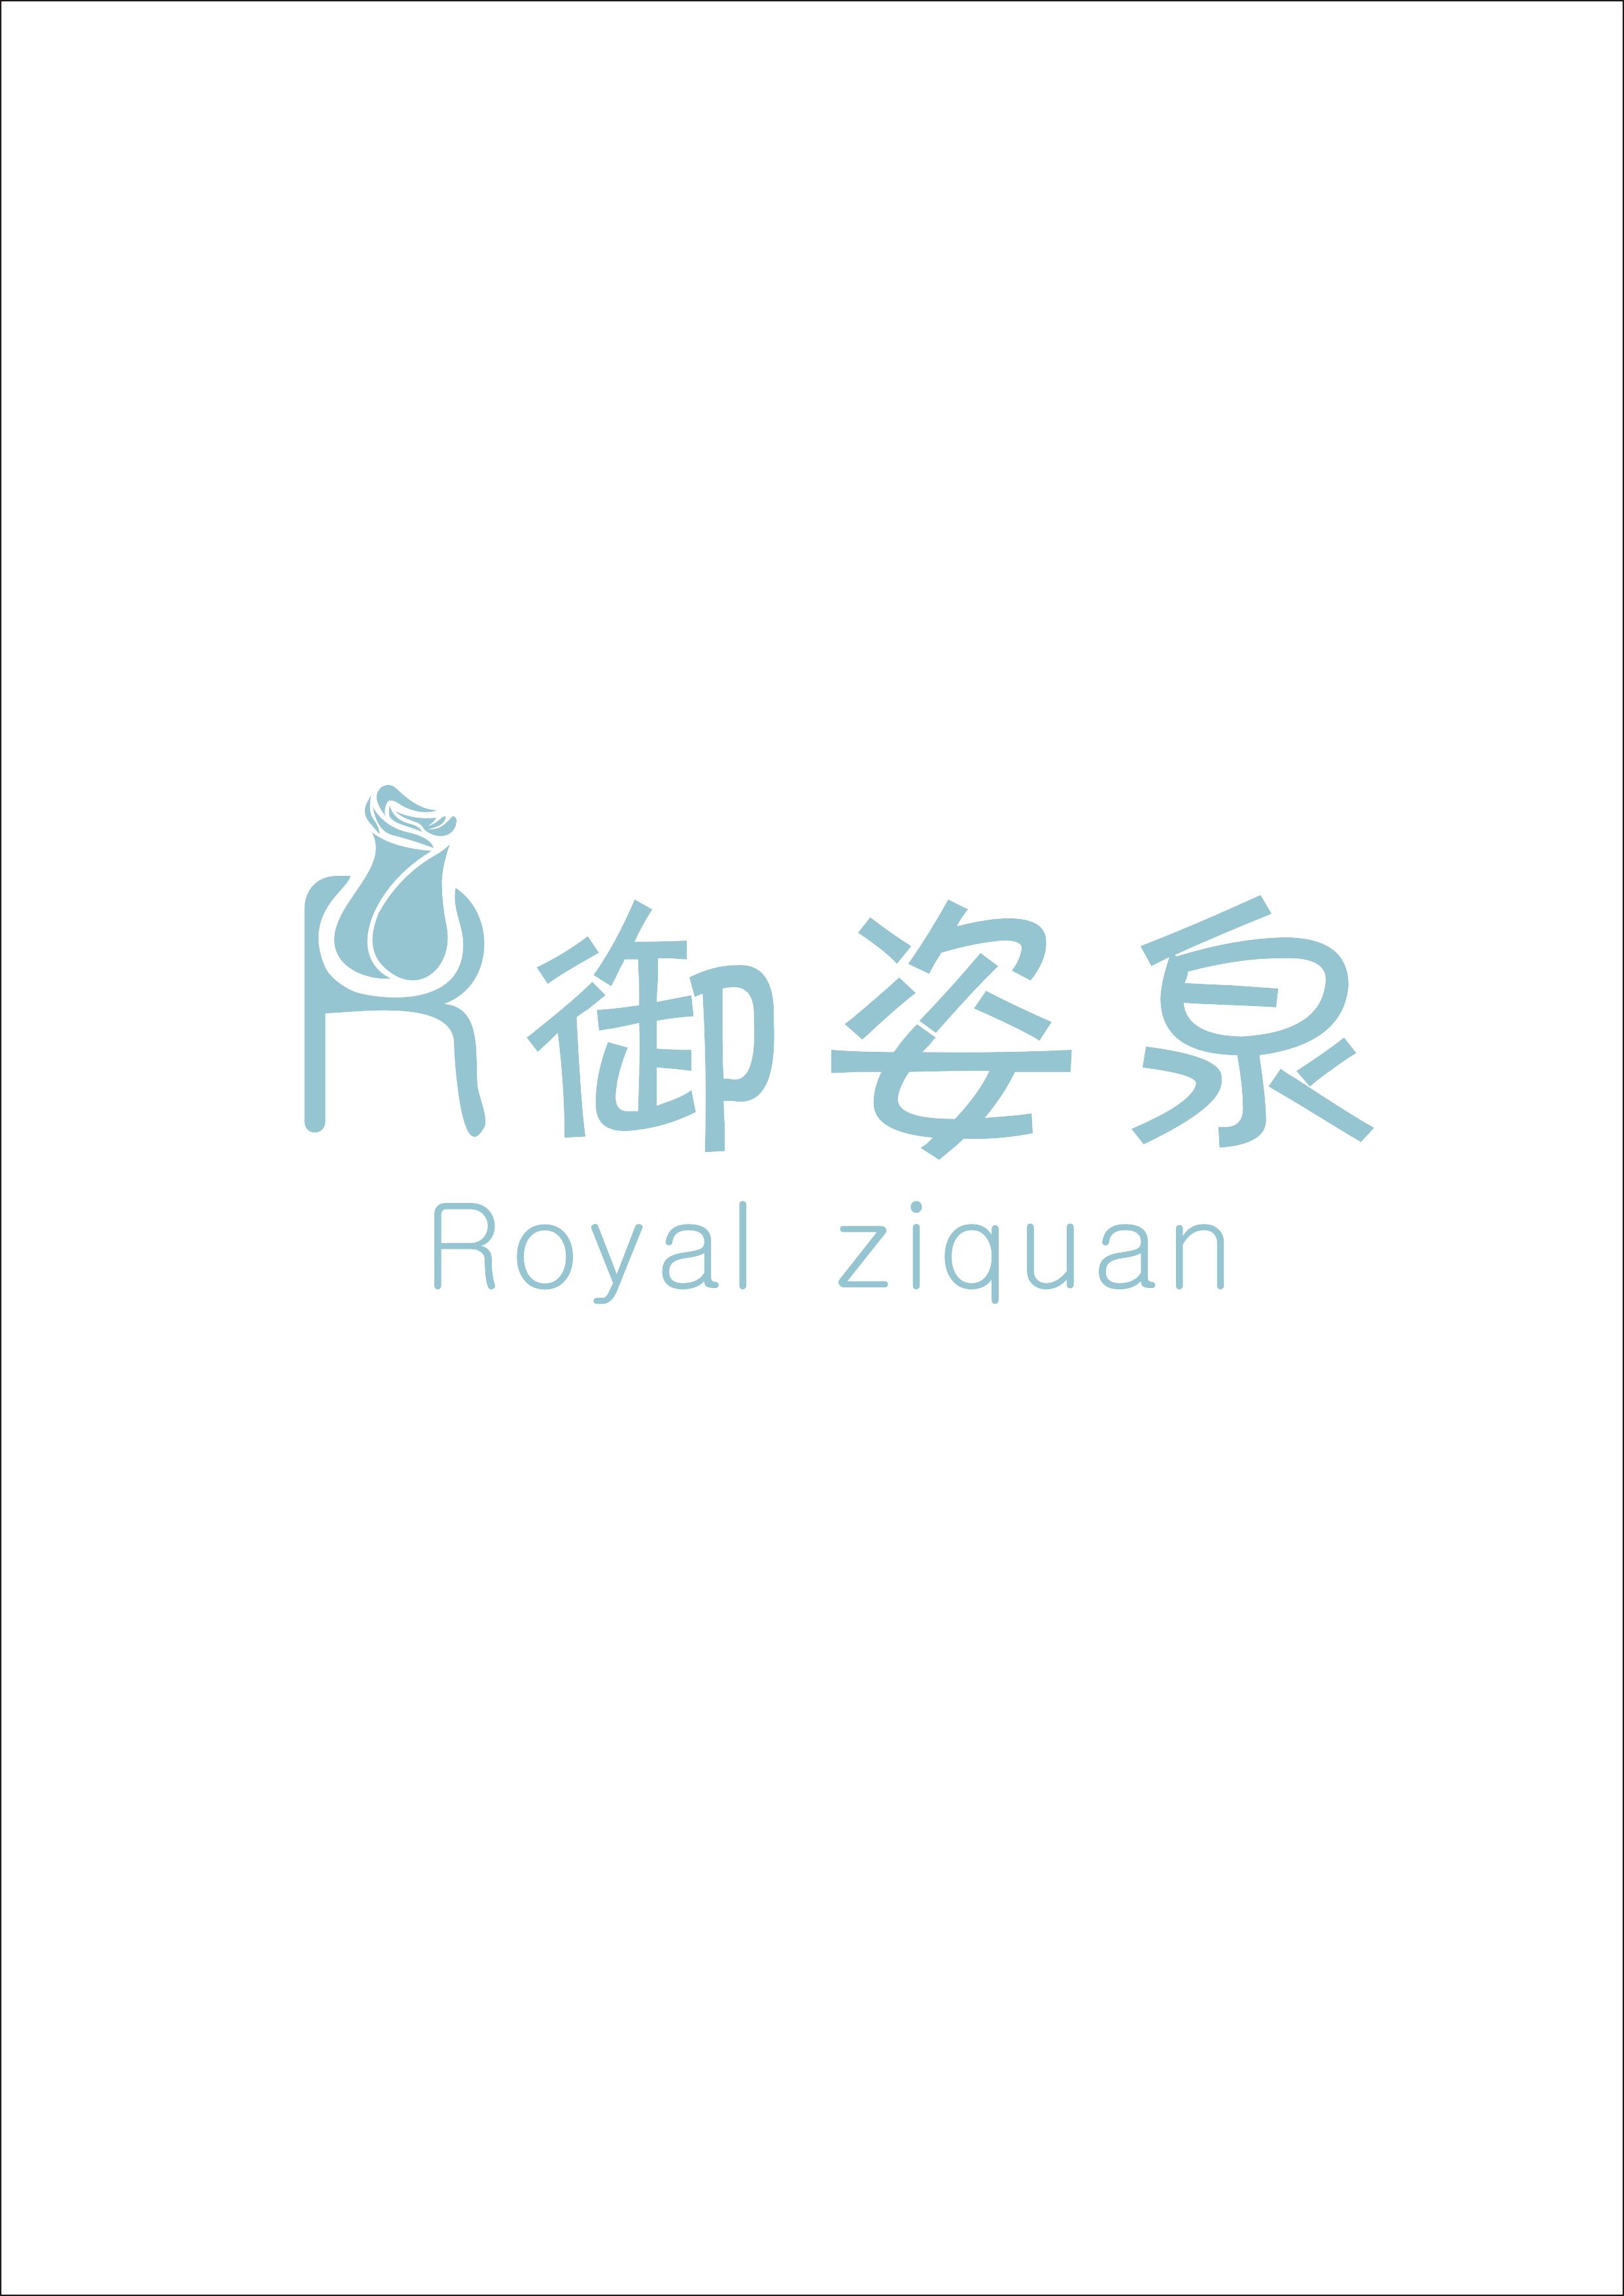 御姿泉(Royal  ziquan)